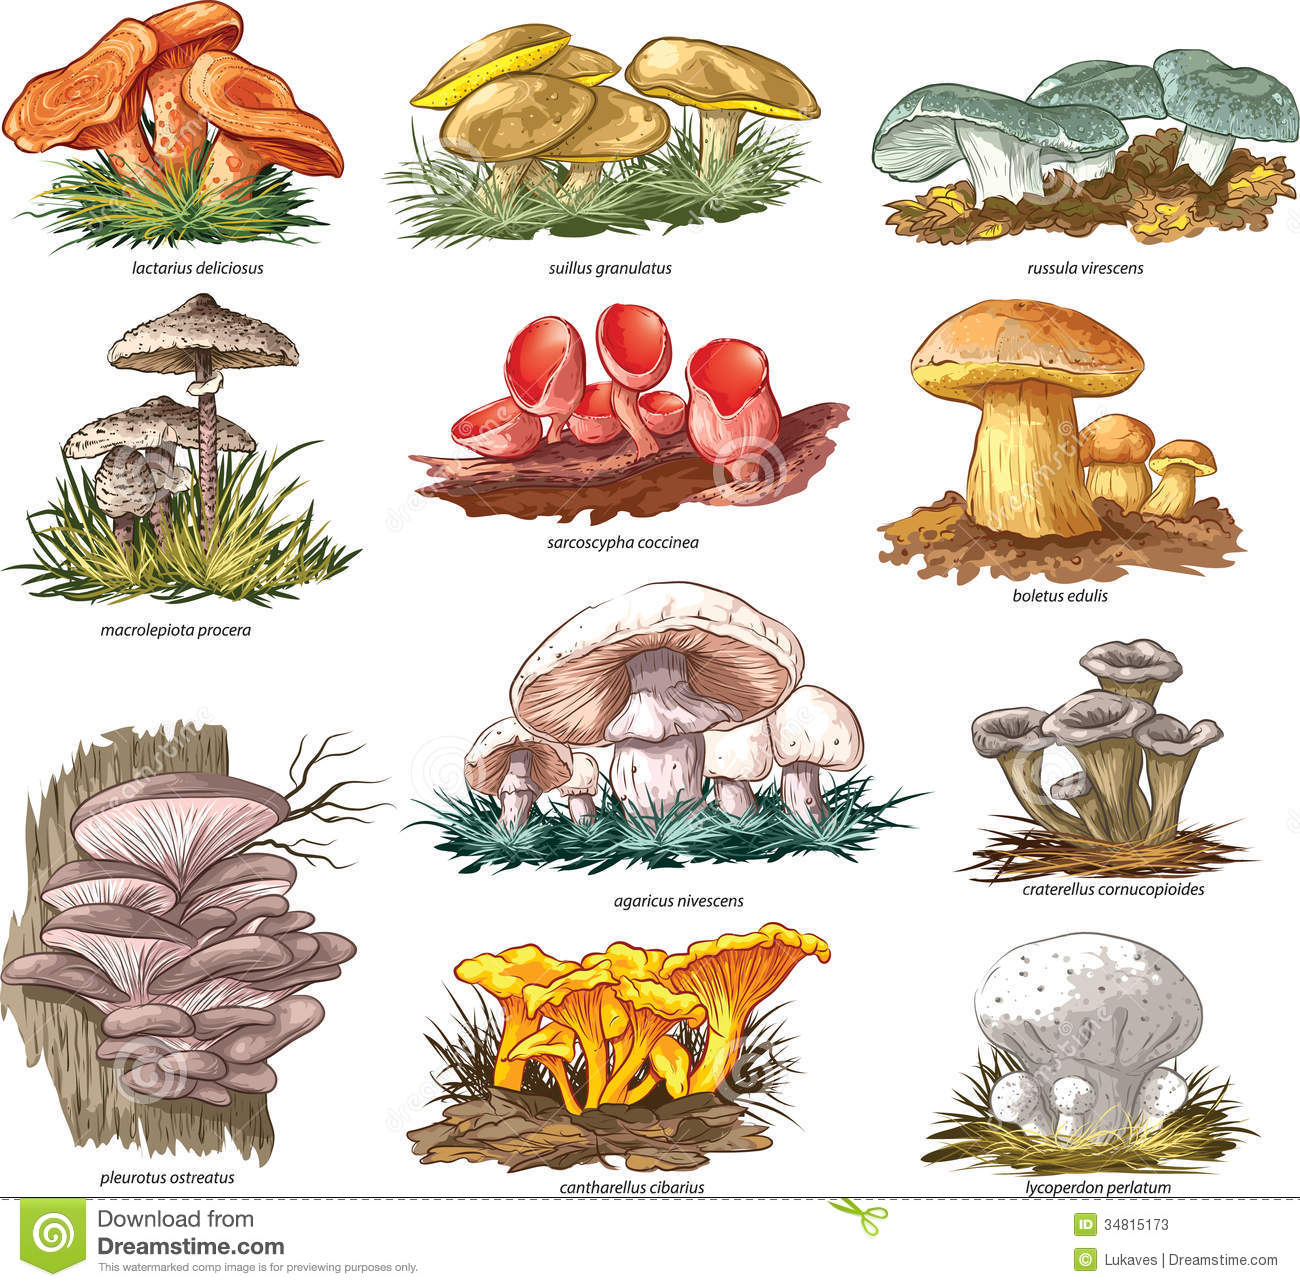 Edible Mushrooms Stock Photos - Image: 34815173